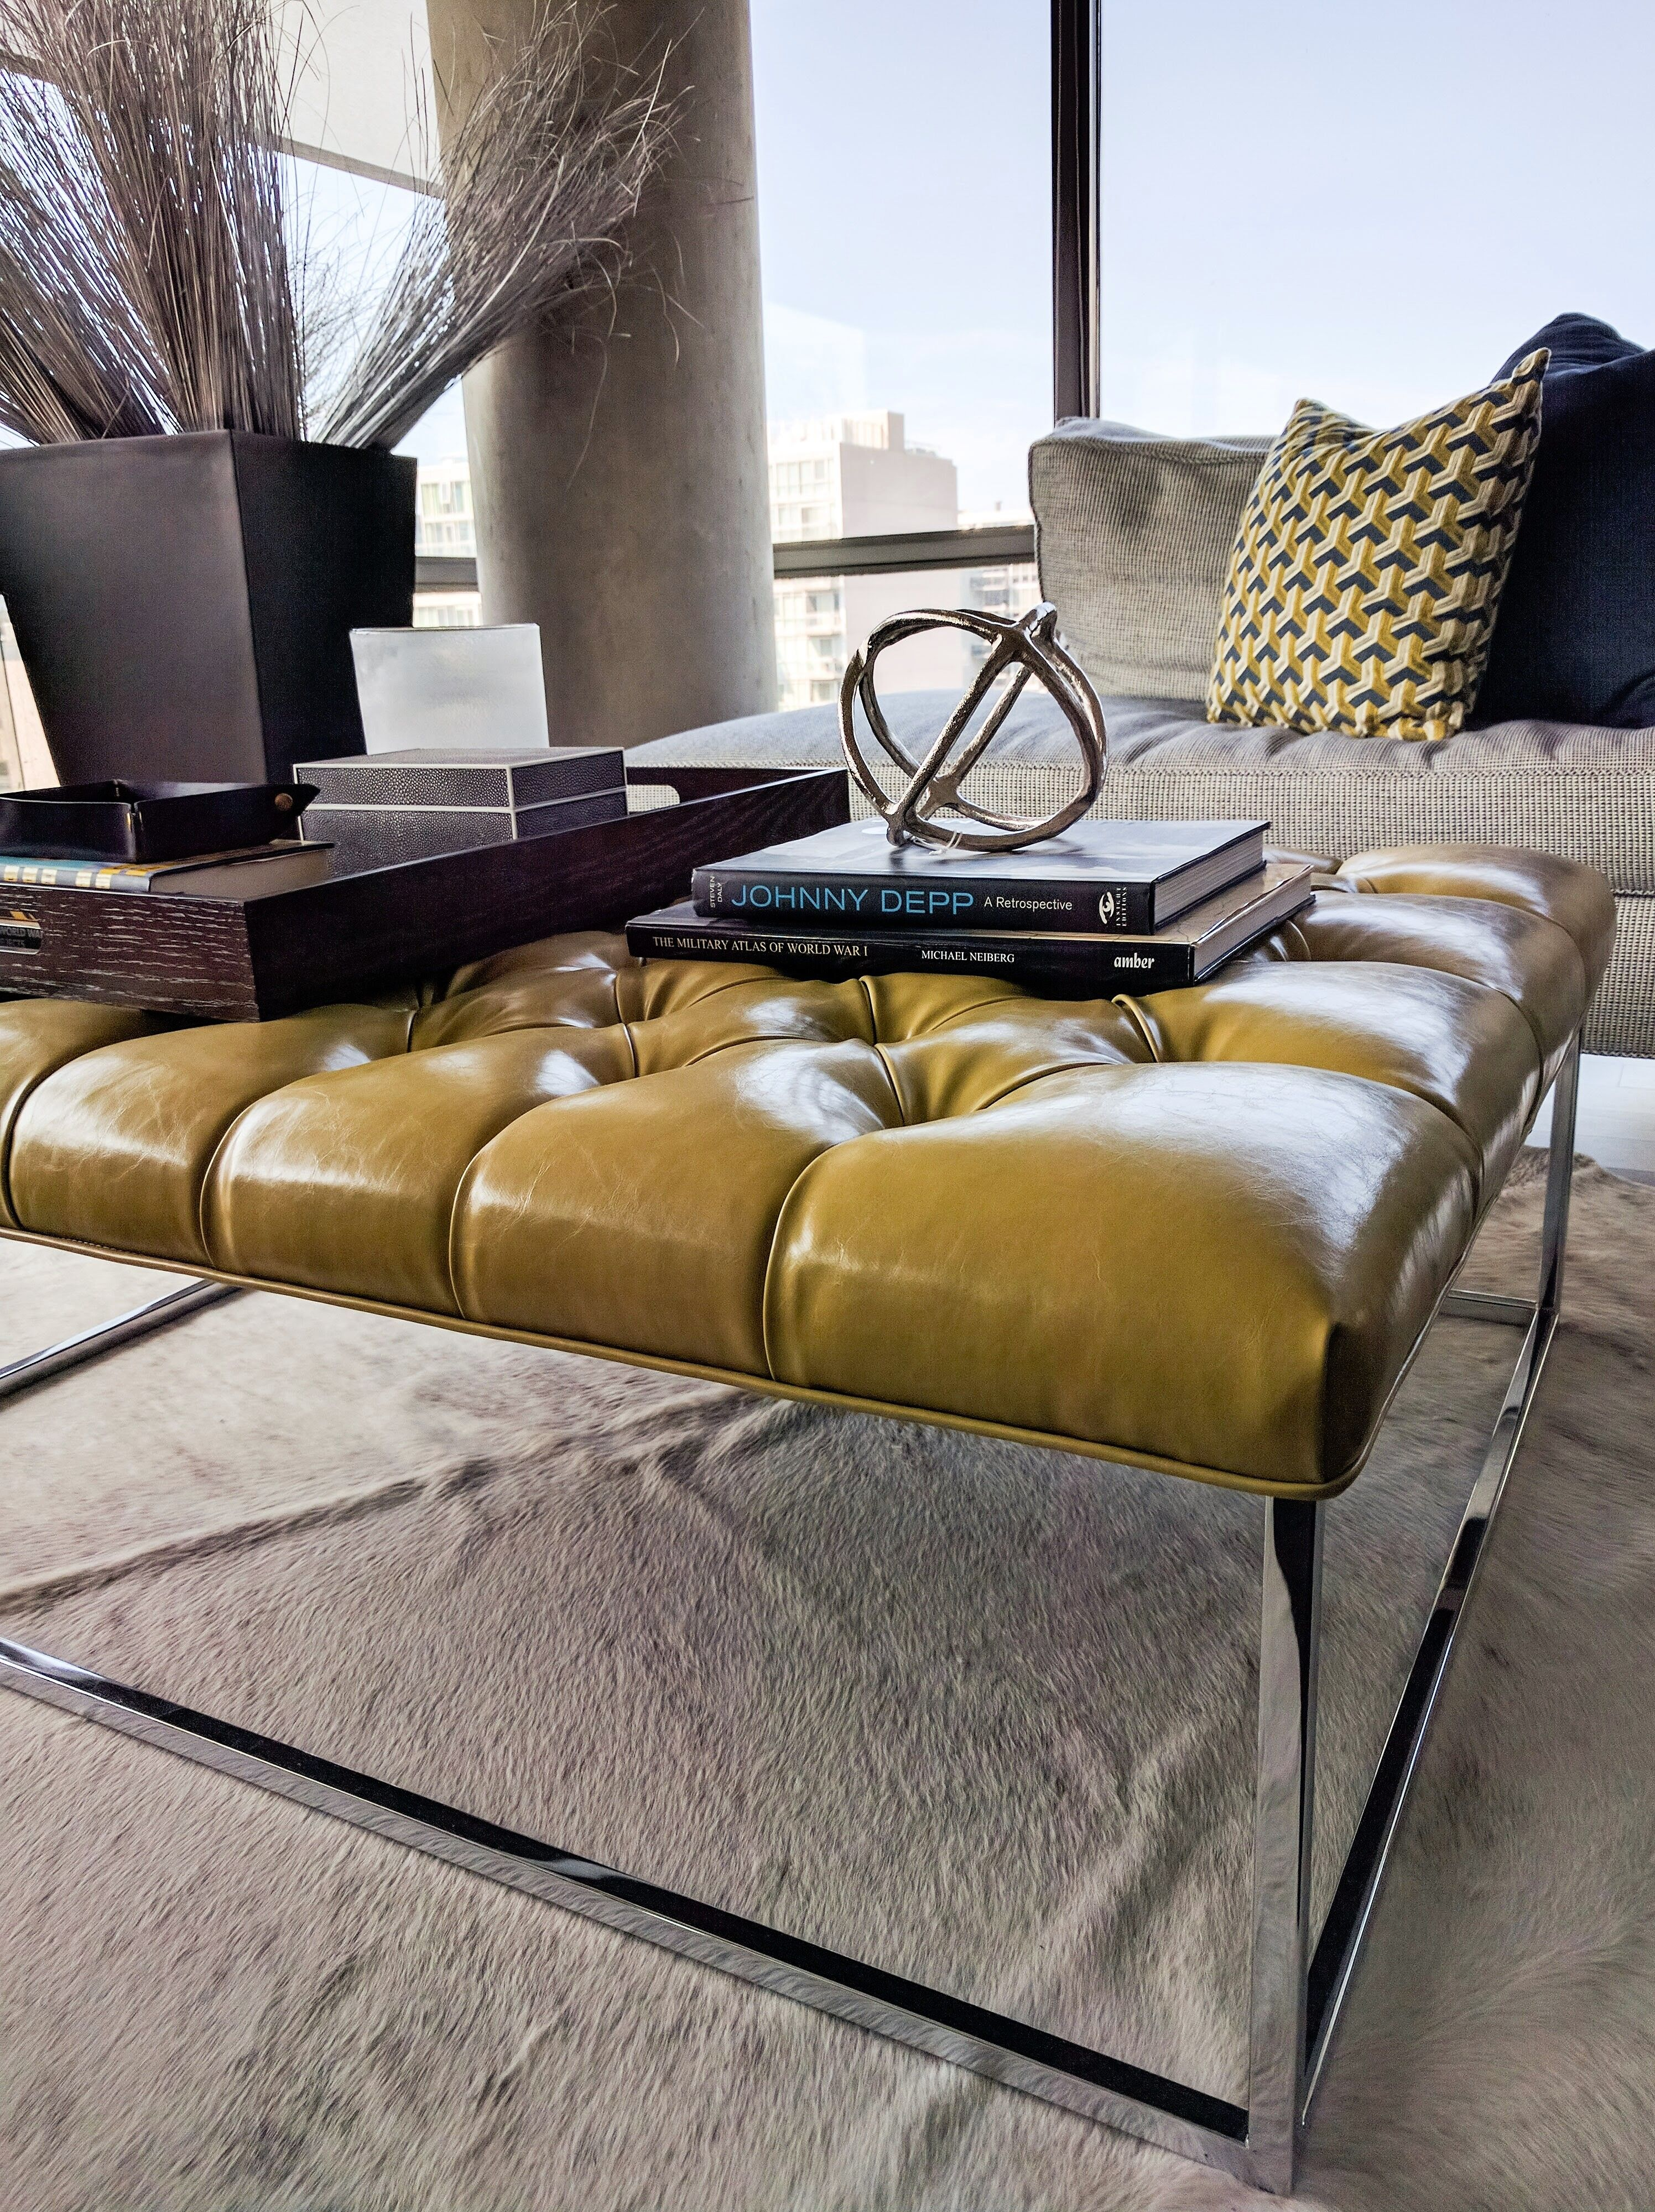 Coffee table sourcing styling for jessica kelly design